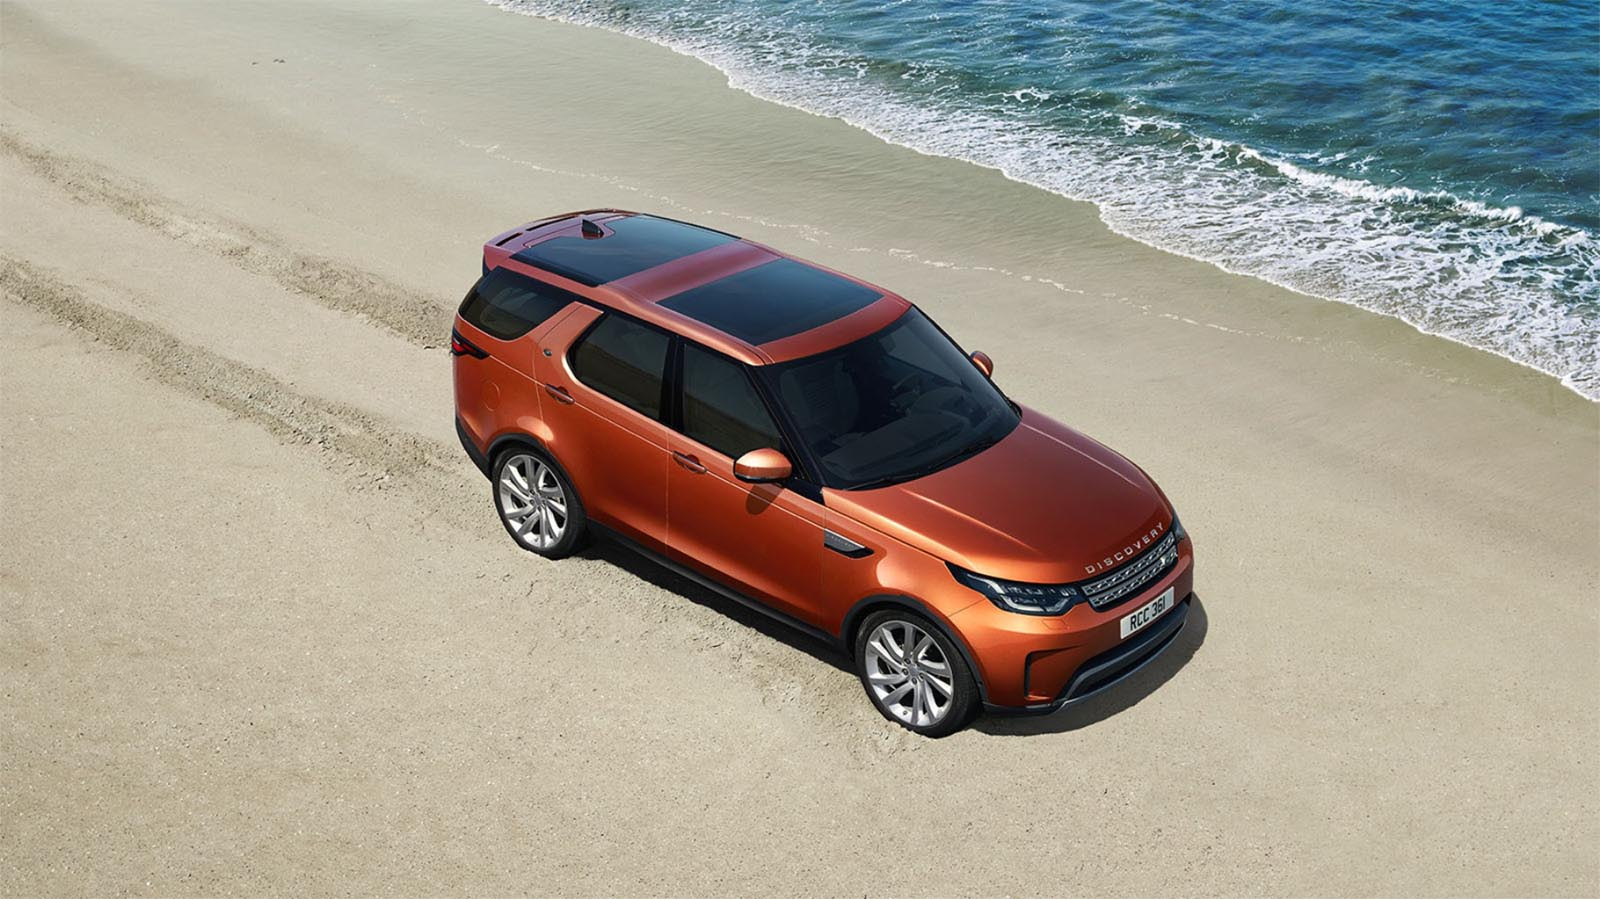 Land Rover Discovery 2017 4x4 Off-Road Vehicle on Sand